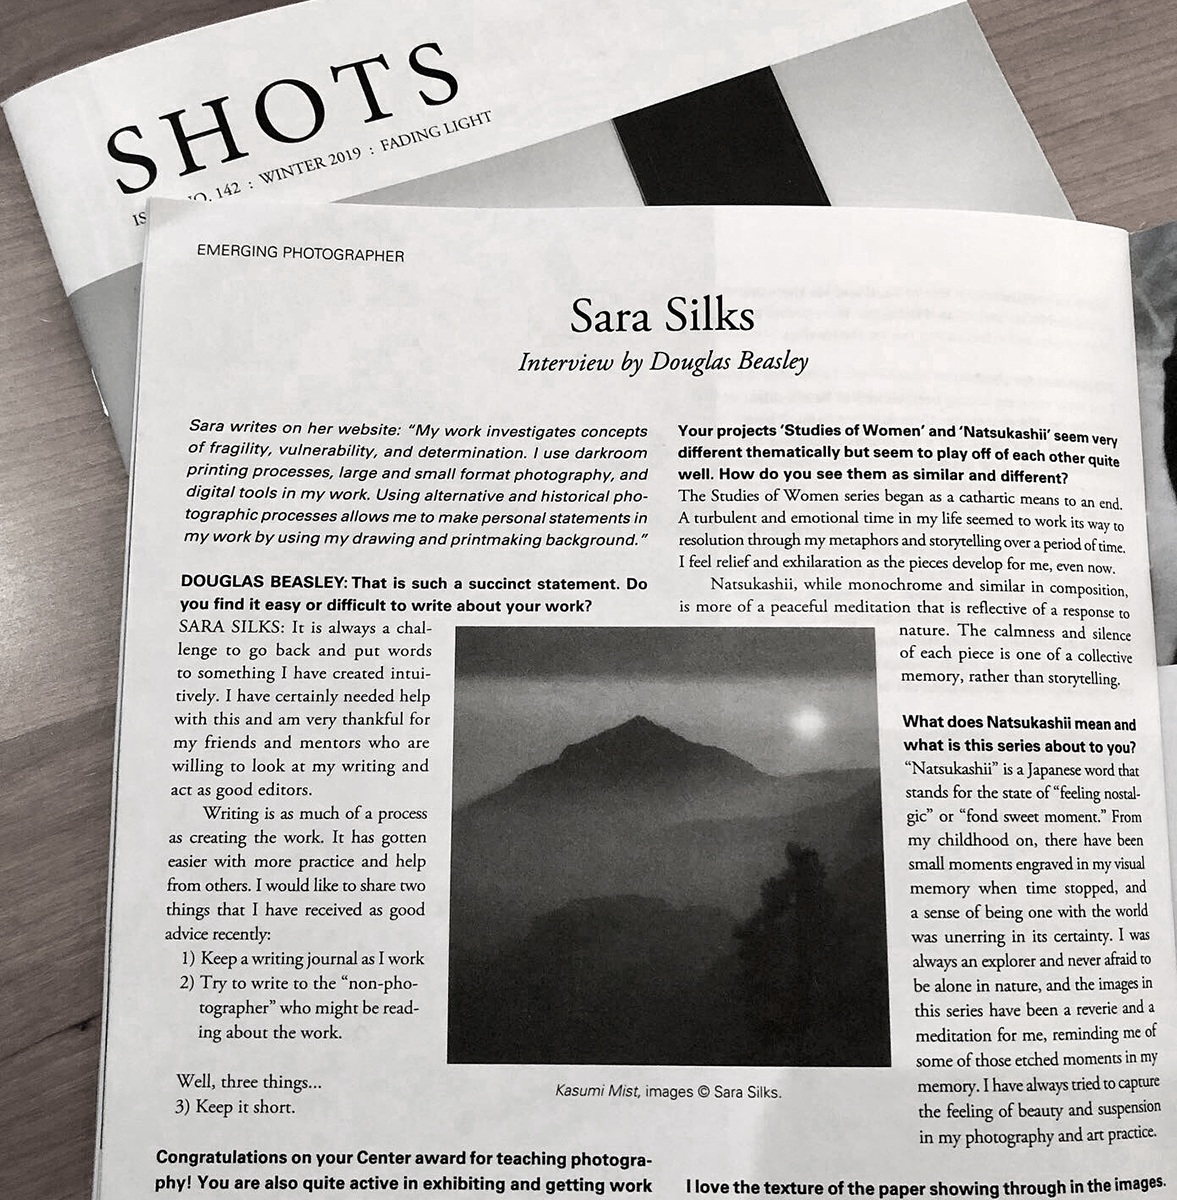 SHOTS Magazine FEATURE: EMERGING ARTIST